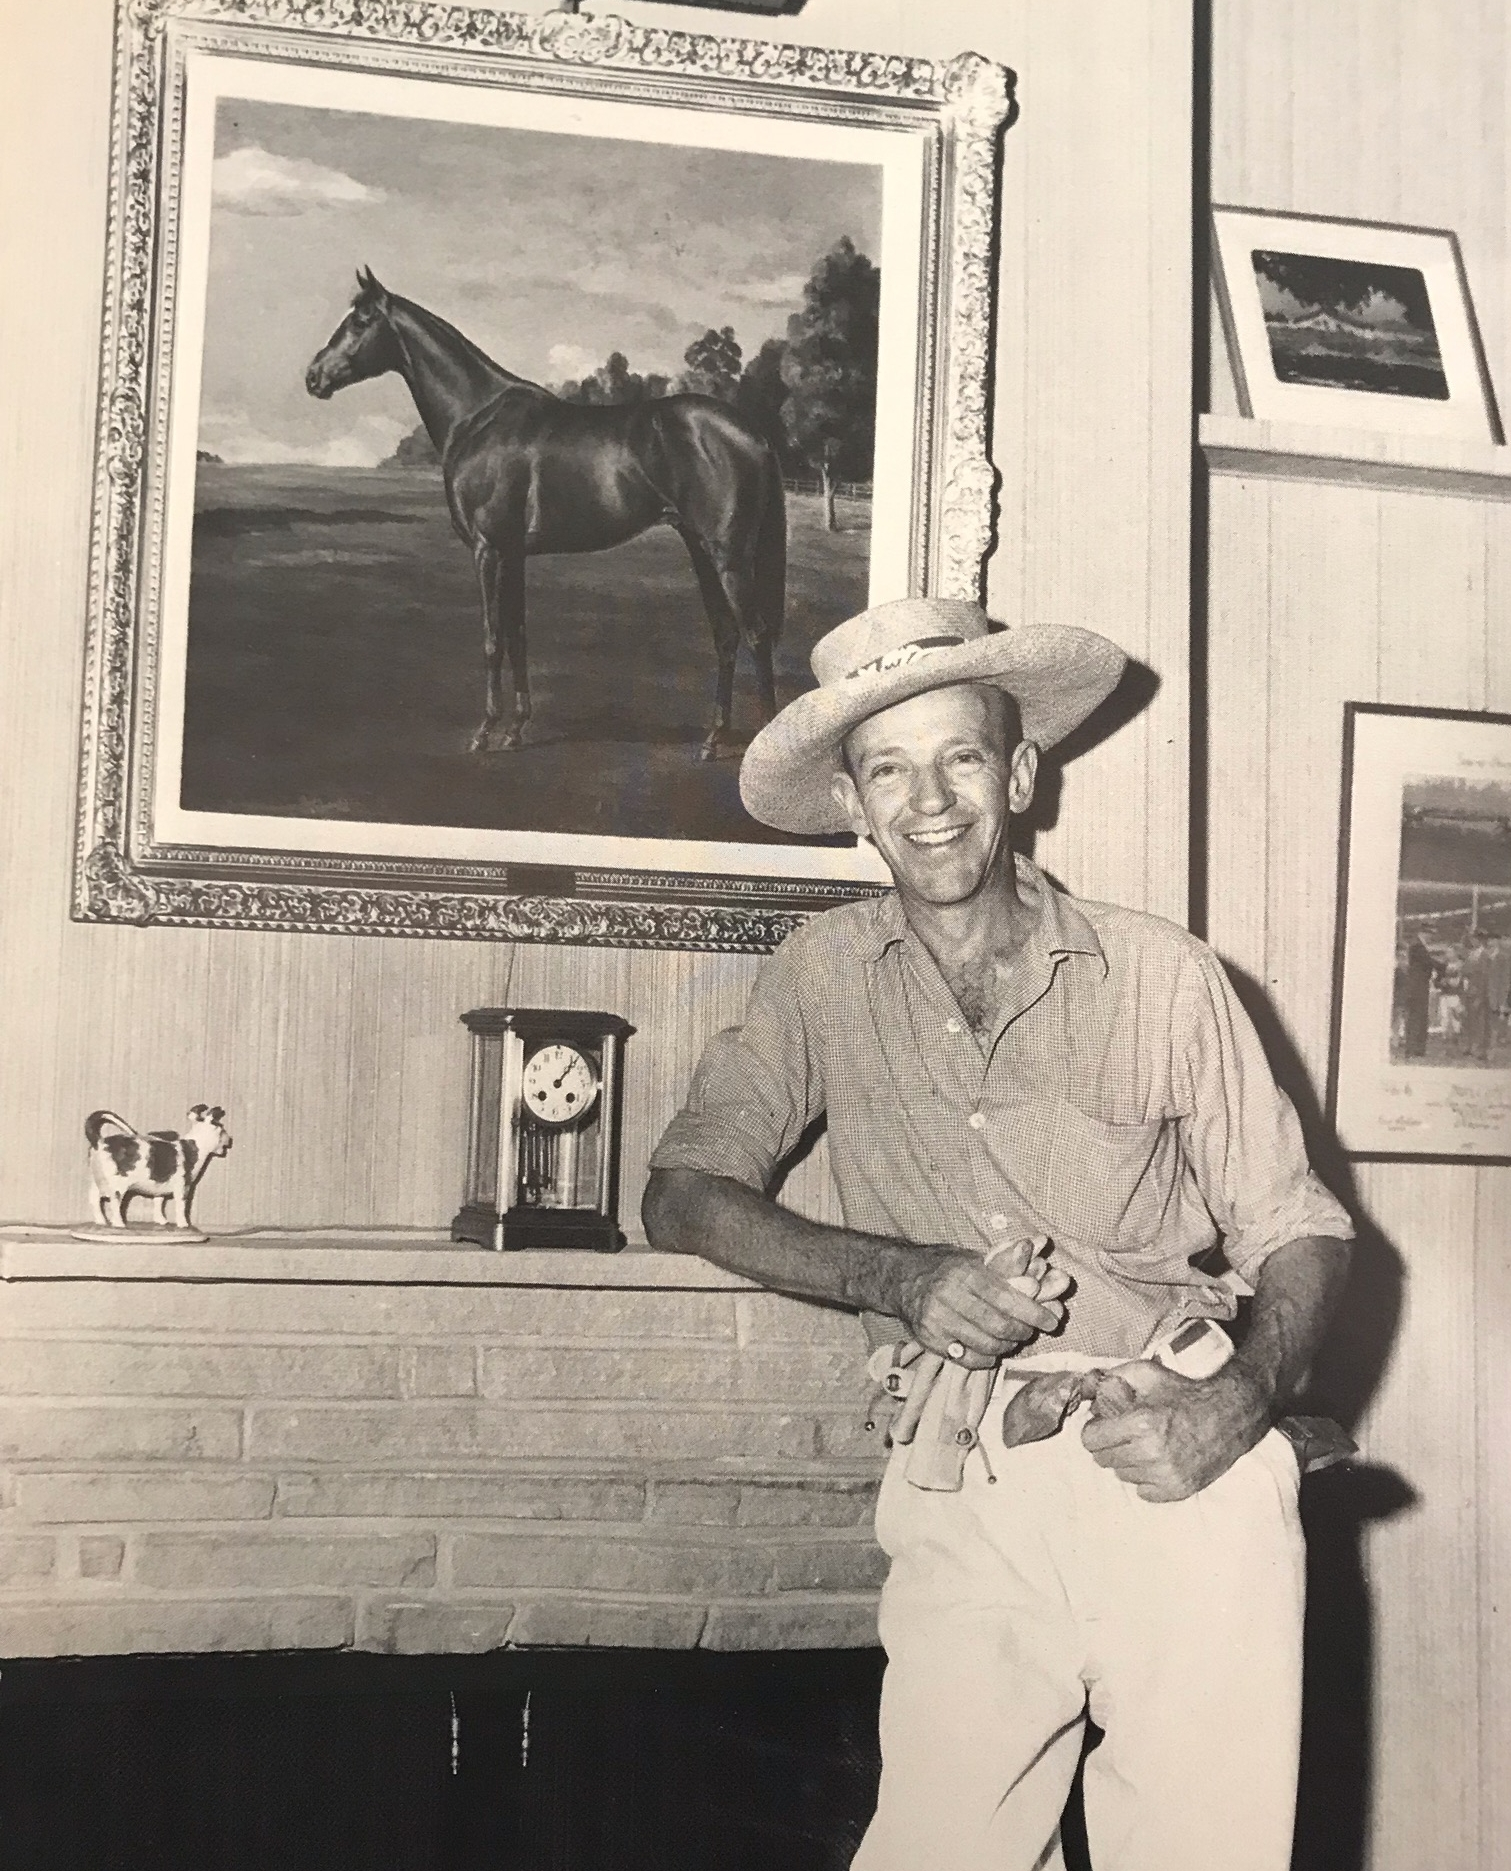 Fred at his Blue Valley Ranch 1947 - Triplicate with pride of place above the mantle shelf